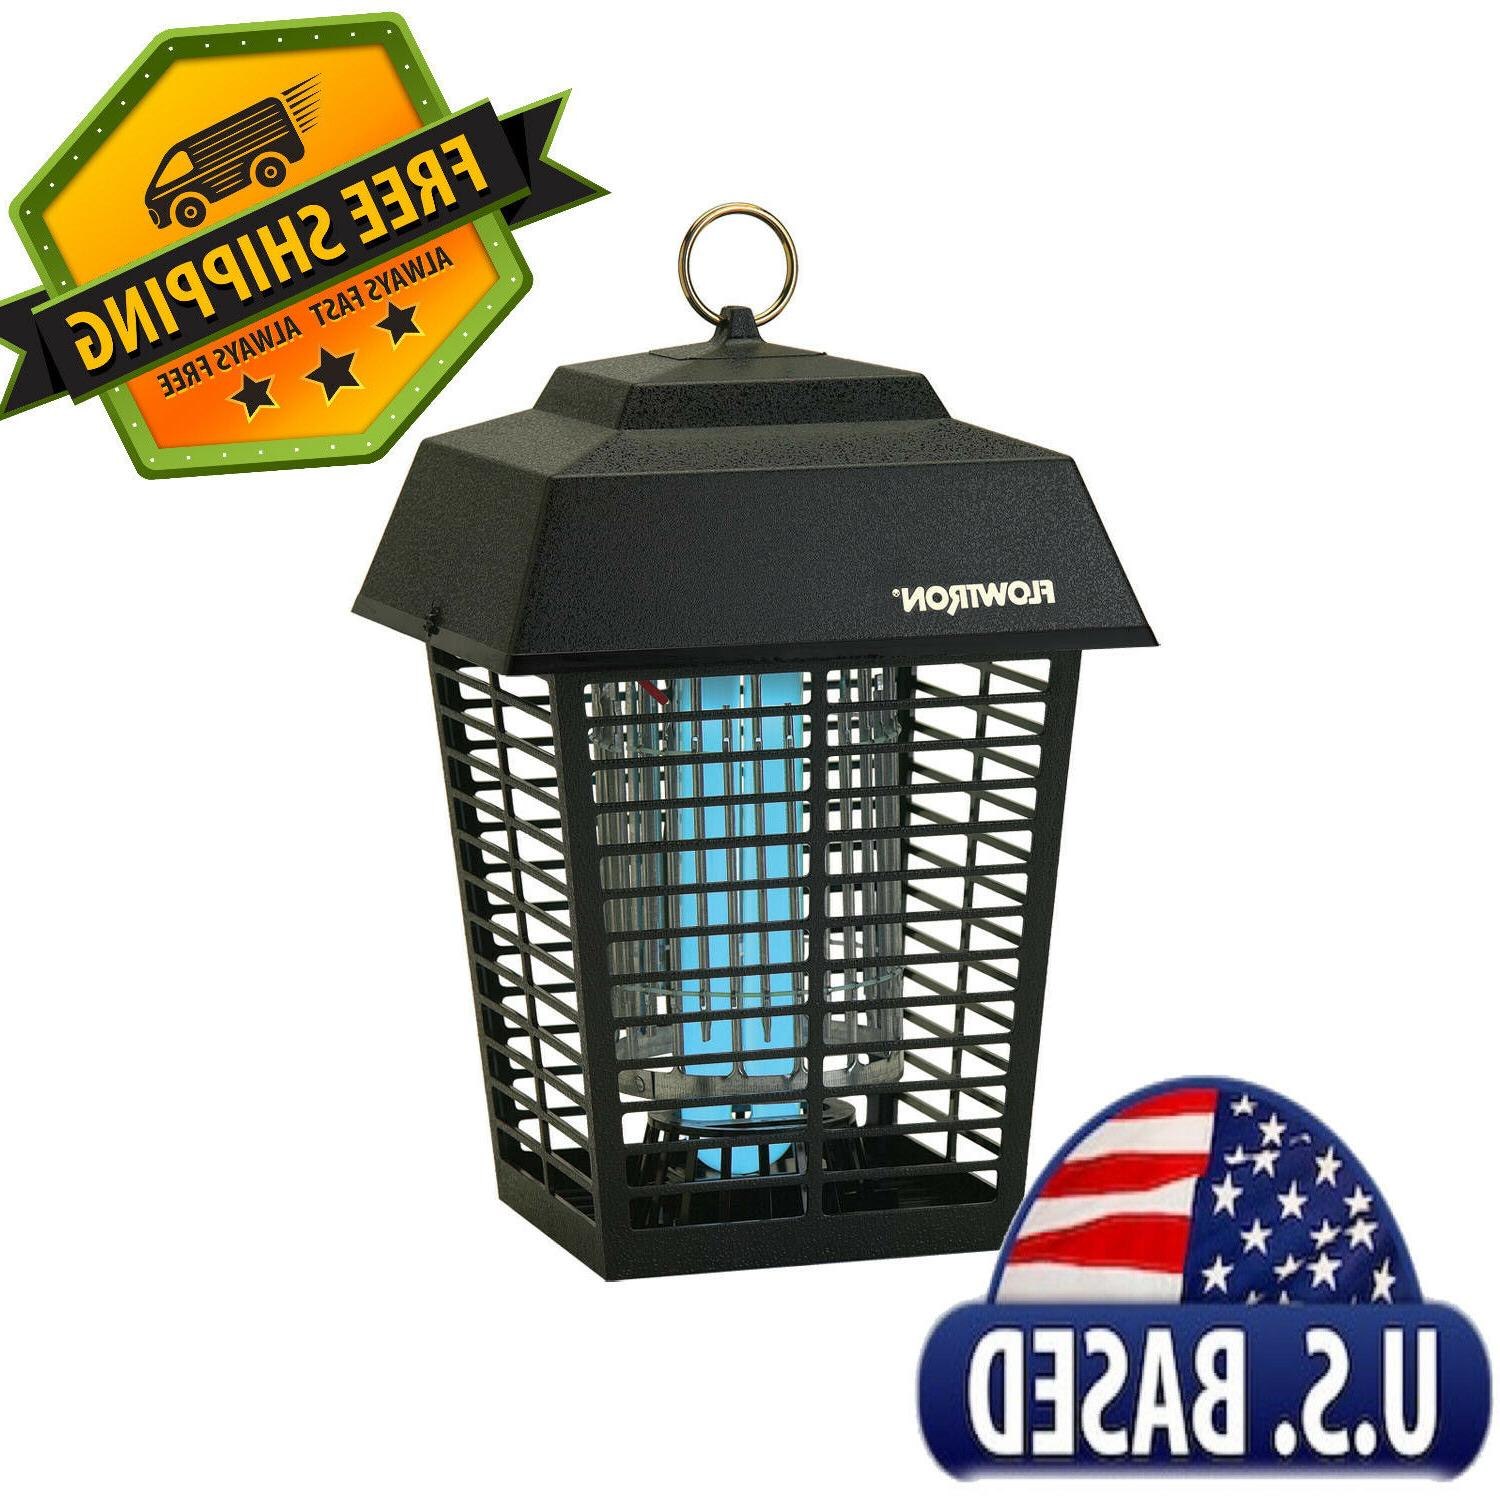 Flowtron Flying Insect Controller 1/2, 1, 1,5 ACRE Mosquito